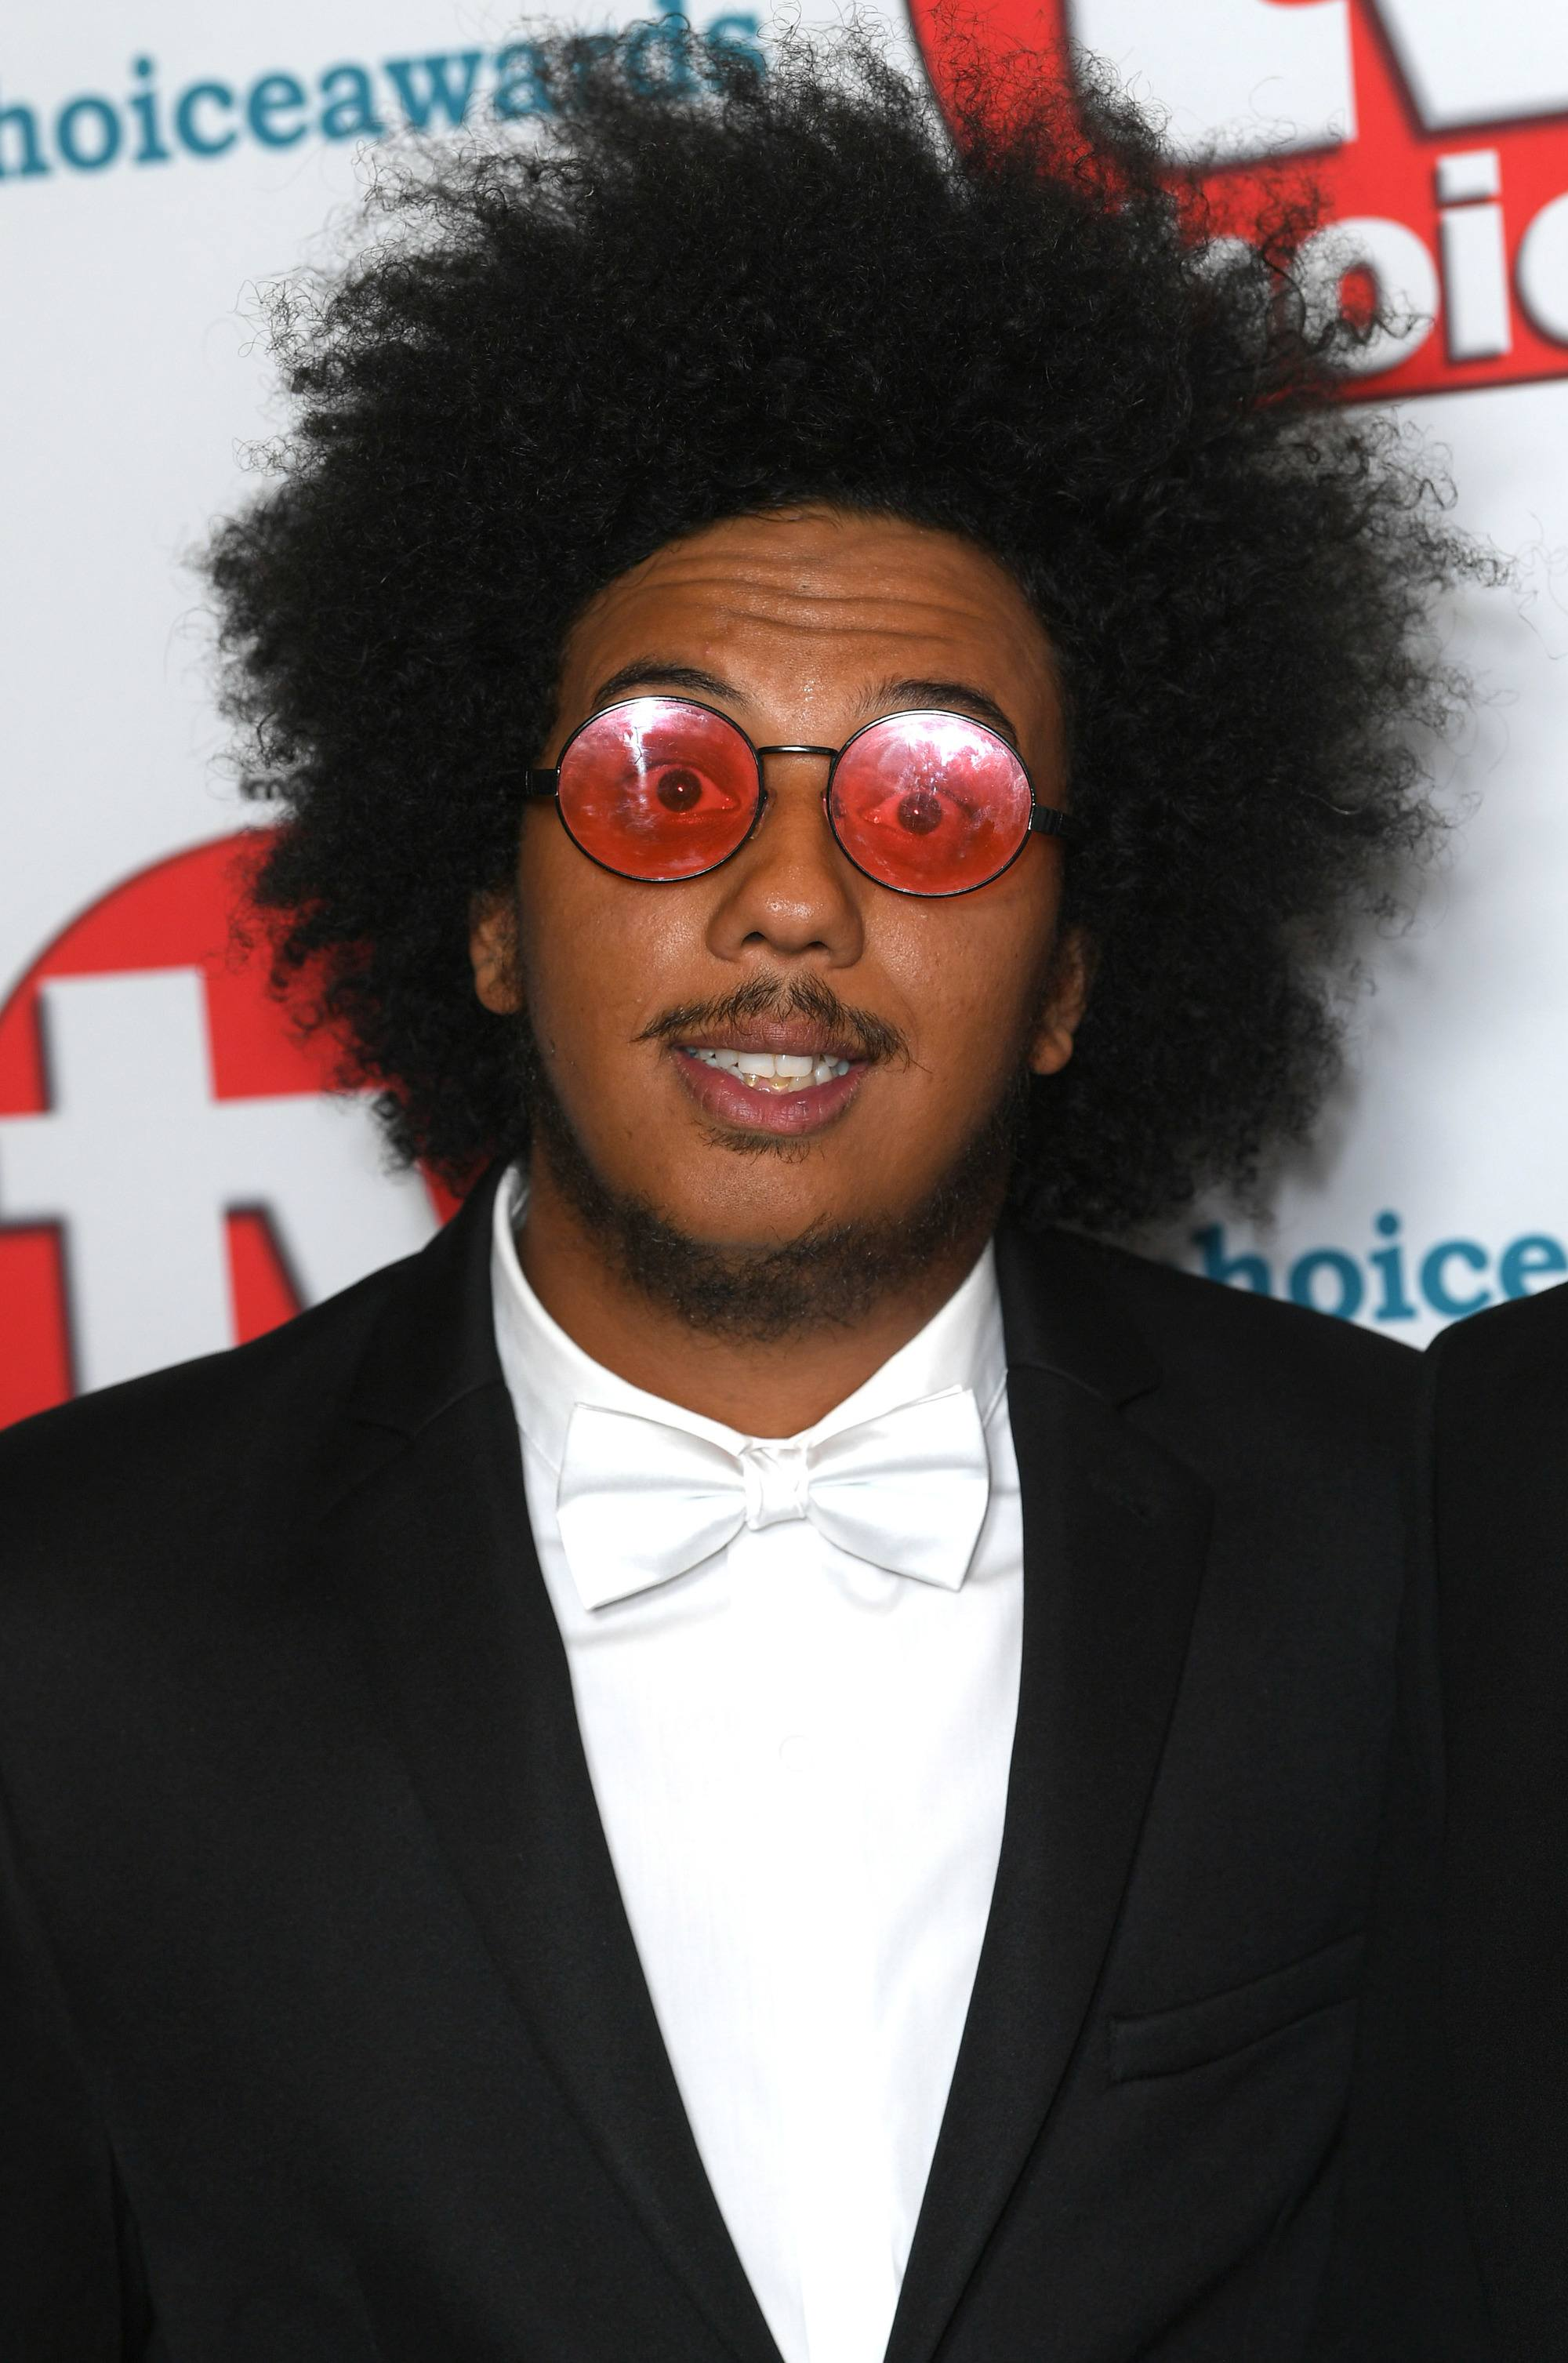 TV Choice Awards: Close up shot of Nathan Byron with medium dark brown natural afro hairstyle, wearing red sunglasses and white tuxedo and black jacket on the red carpet